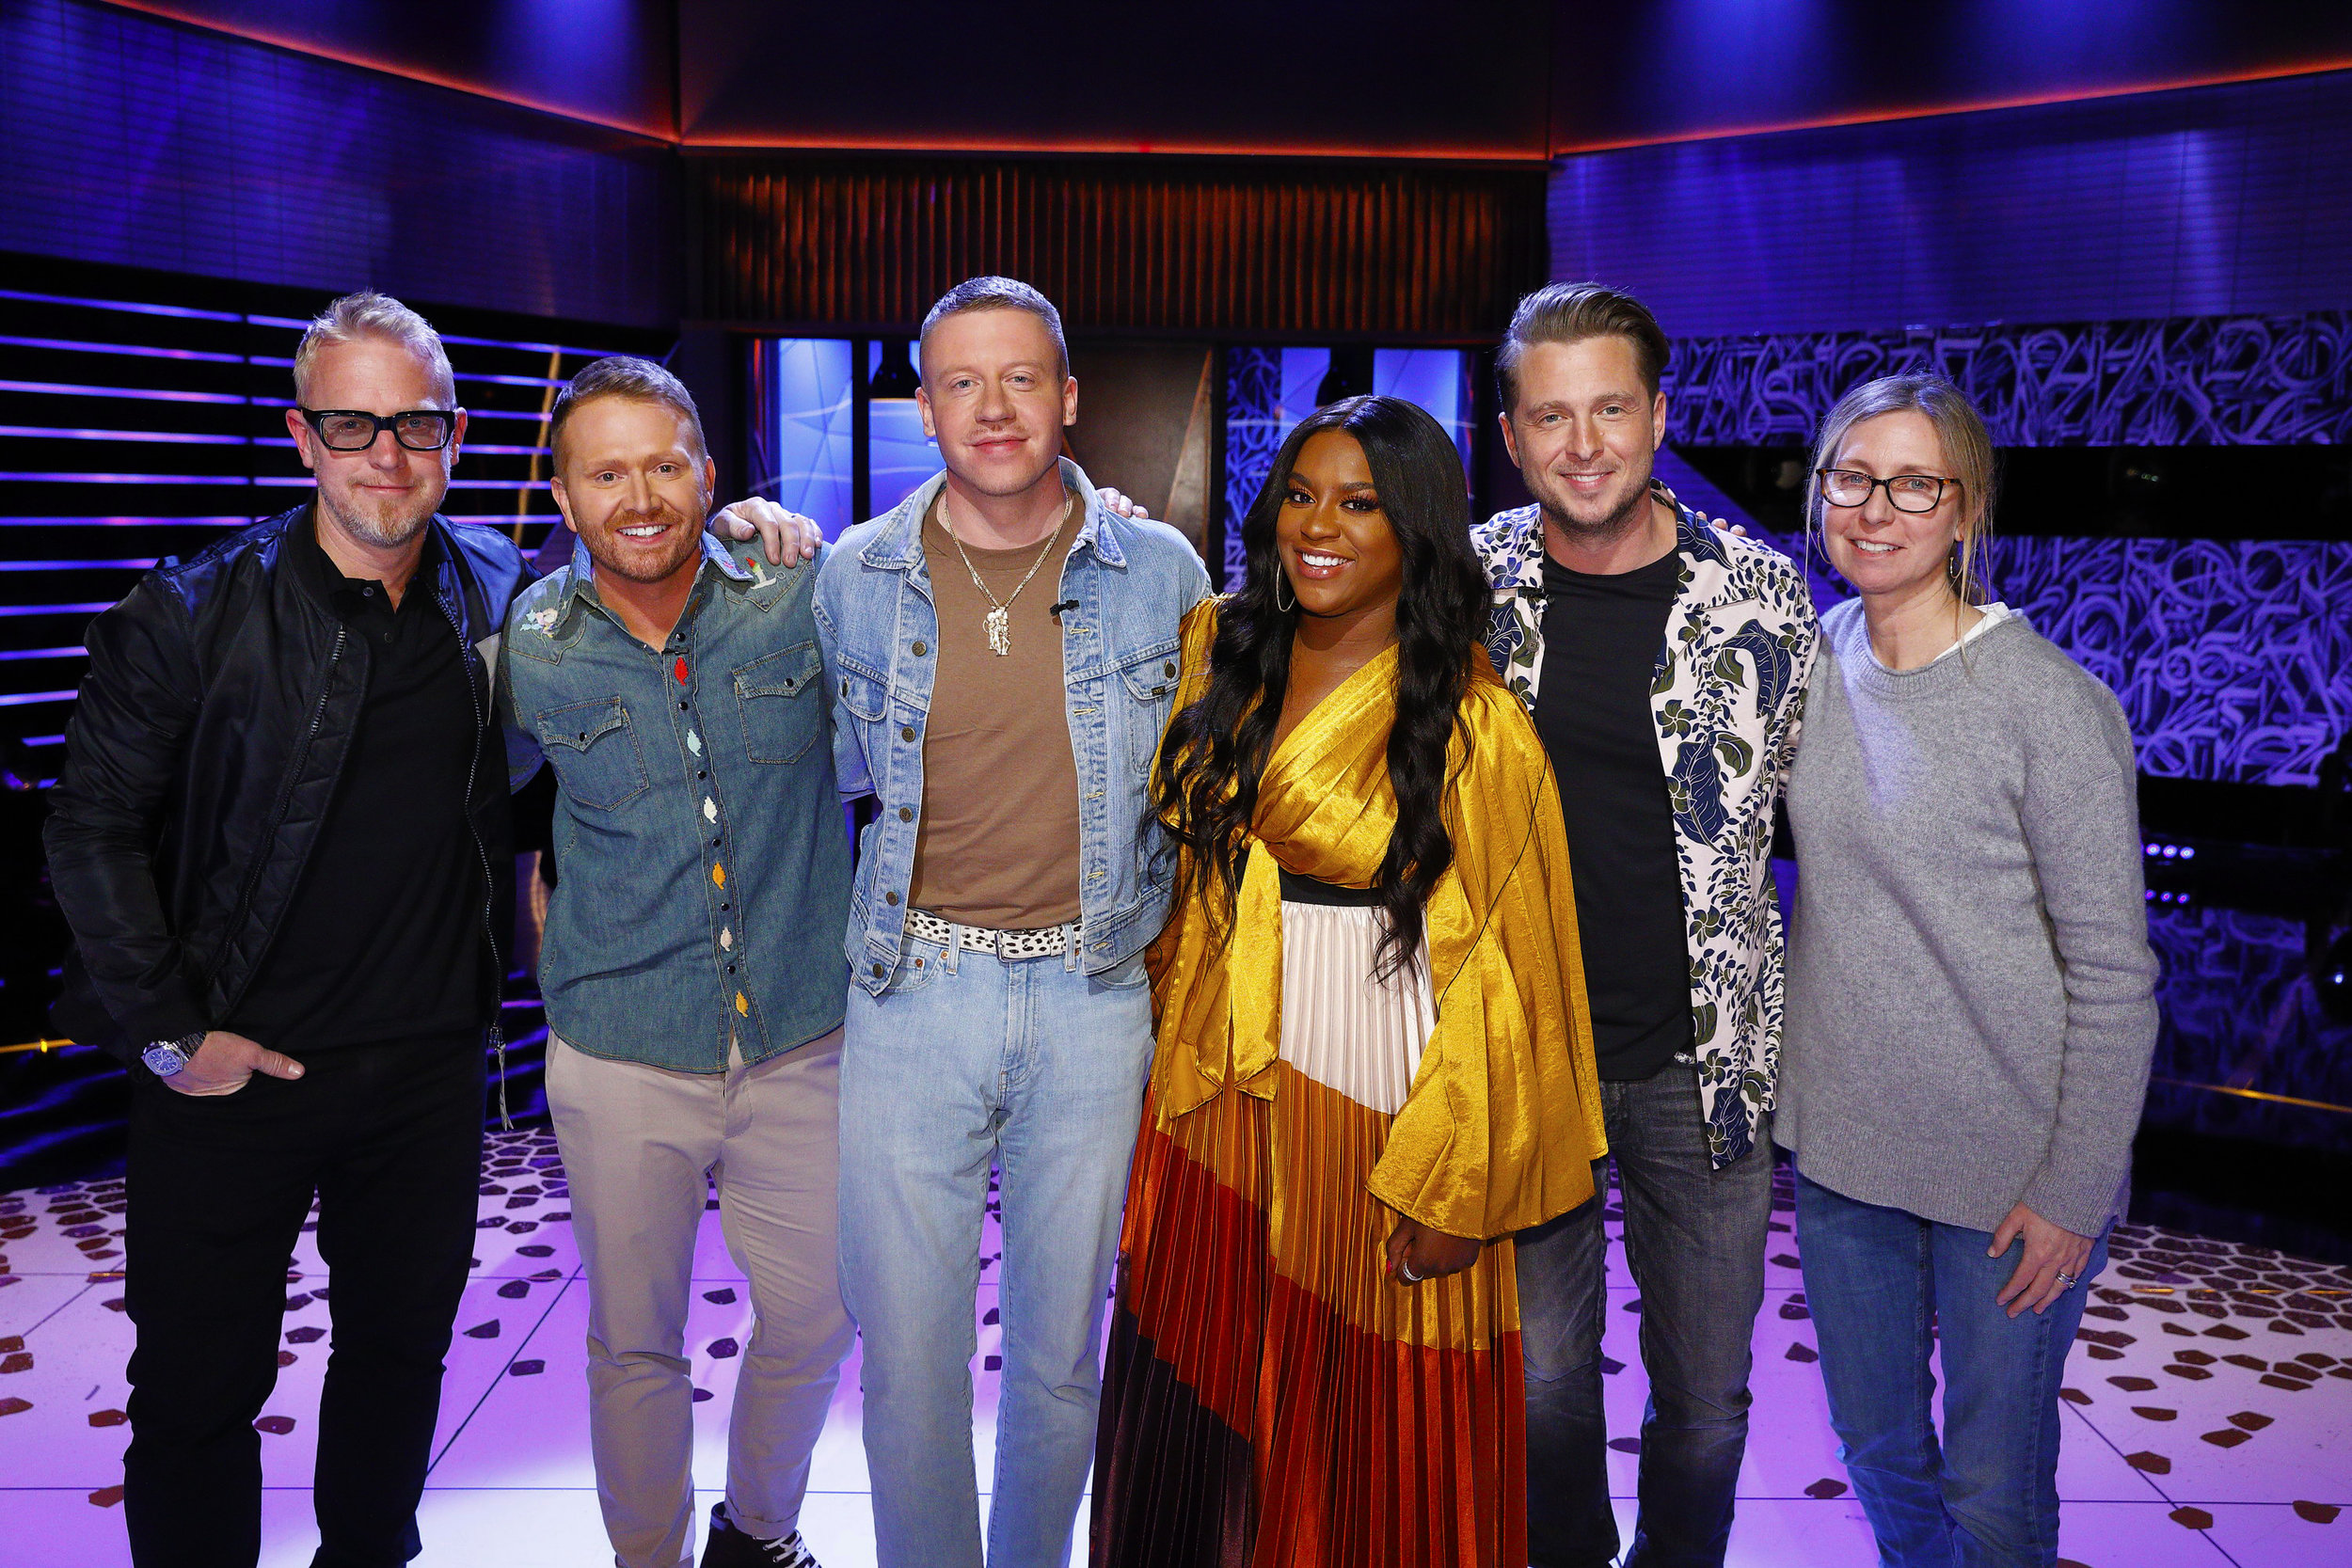 The Search for The Next Big Hit - Aiming to find the next generation of hit songwriters, NBC and Universal Television Alternative Studio are bringing powerhouse producer Audrey Morrissey of